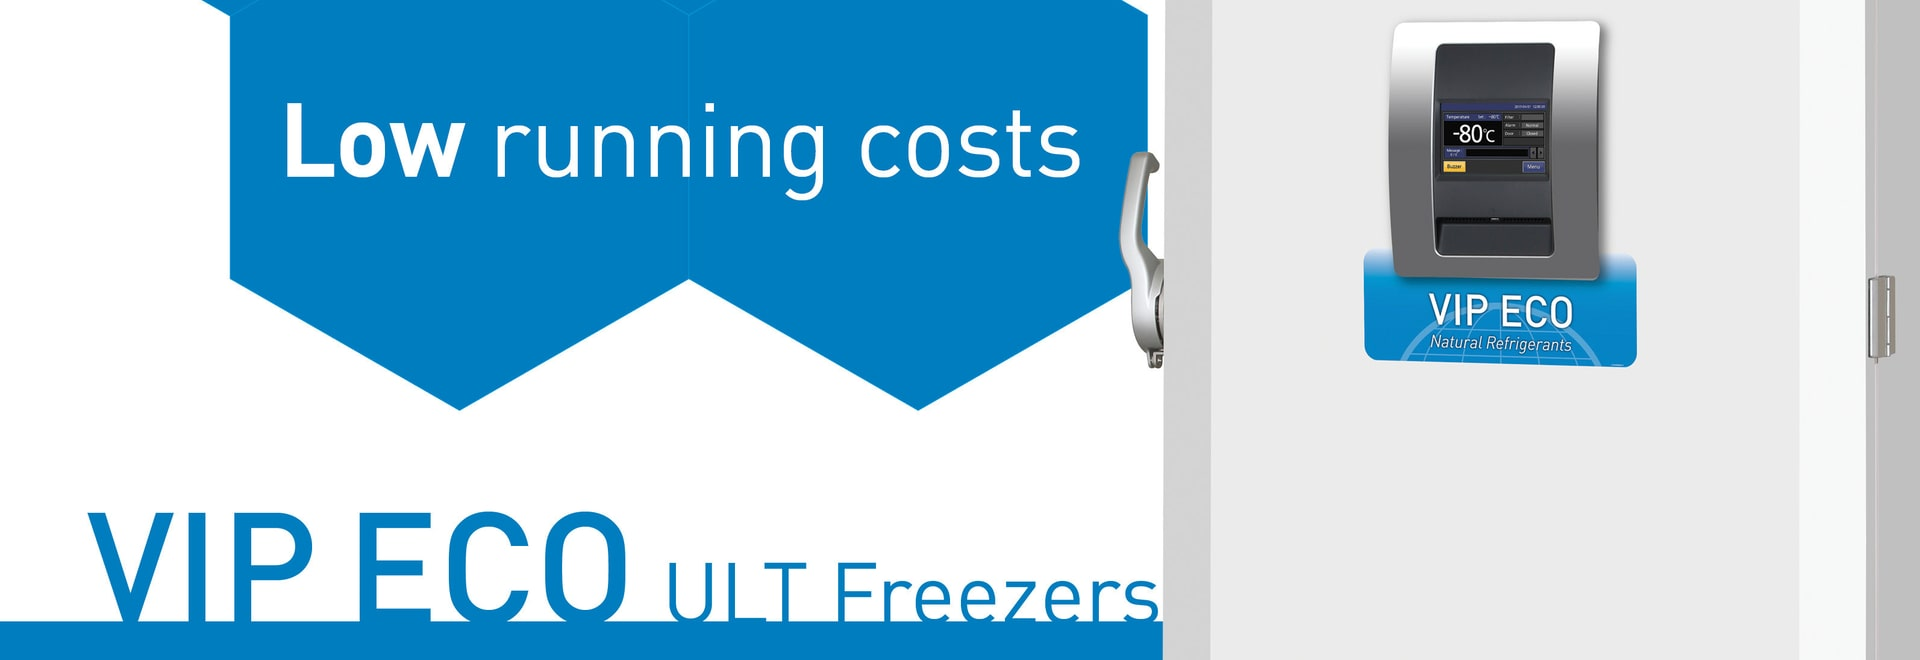 I love low running costs